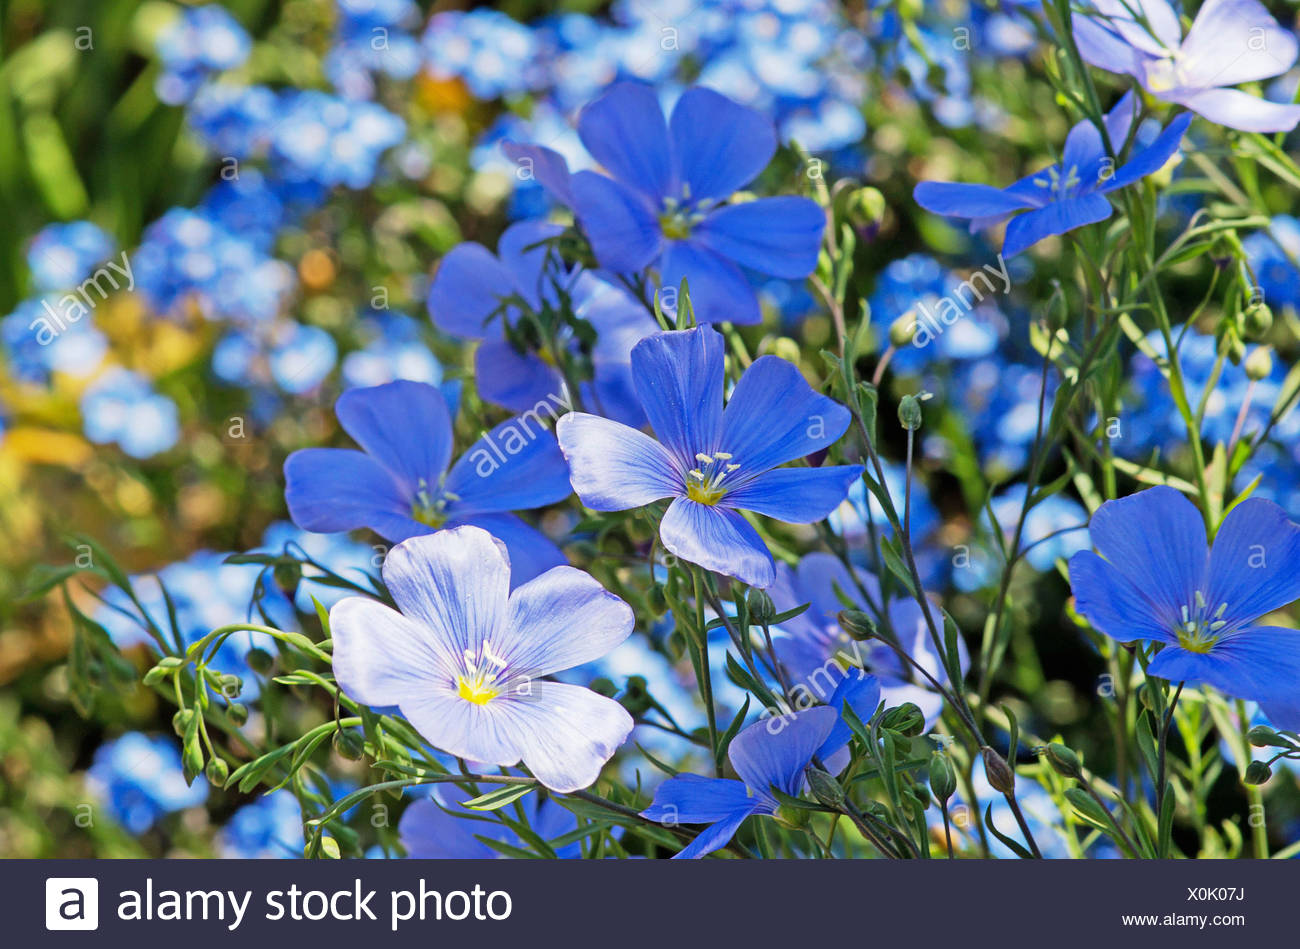 Small blue flowers of perennial flax linum perenne stock photo small blue flowers of perennial flax linum perenne mightylinksfo